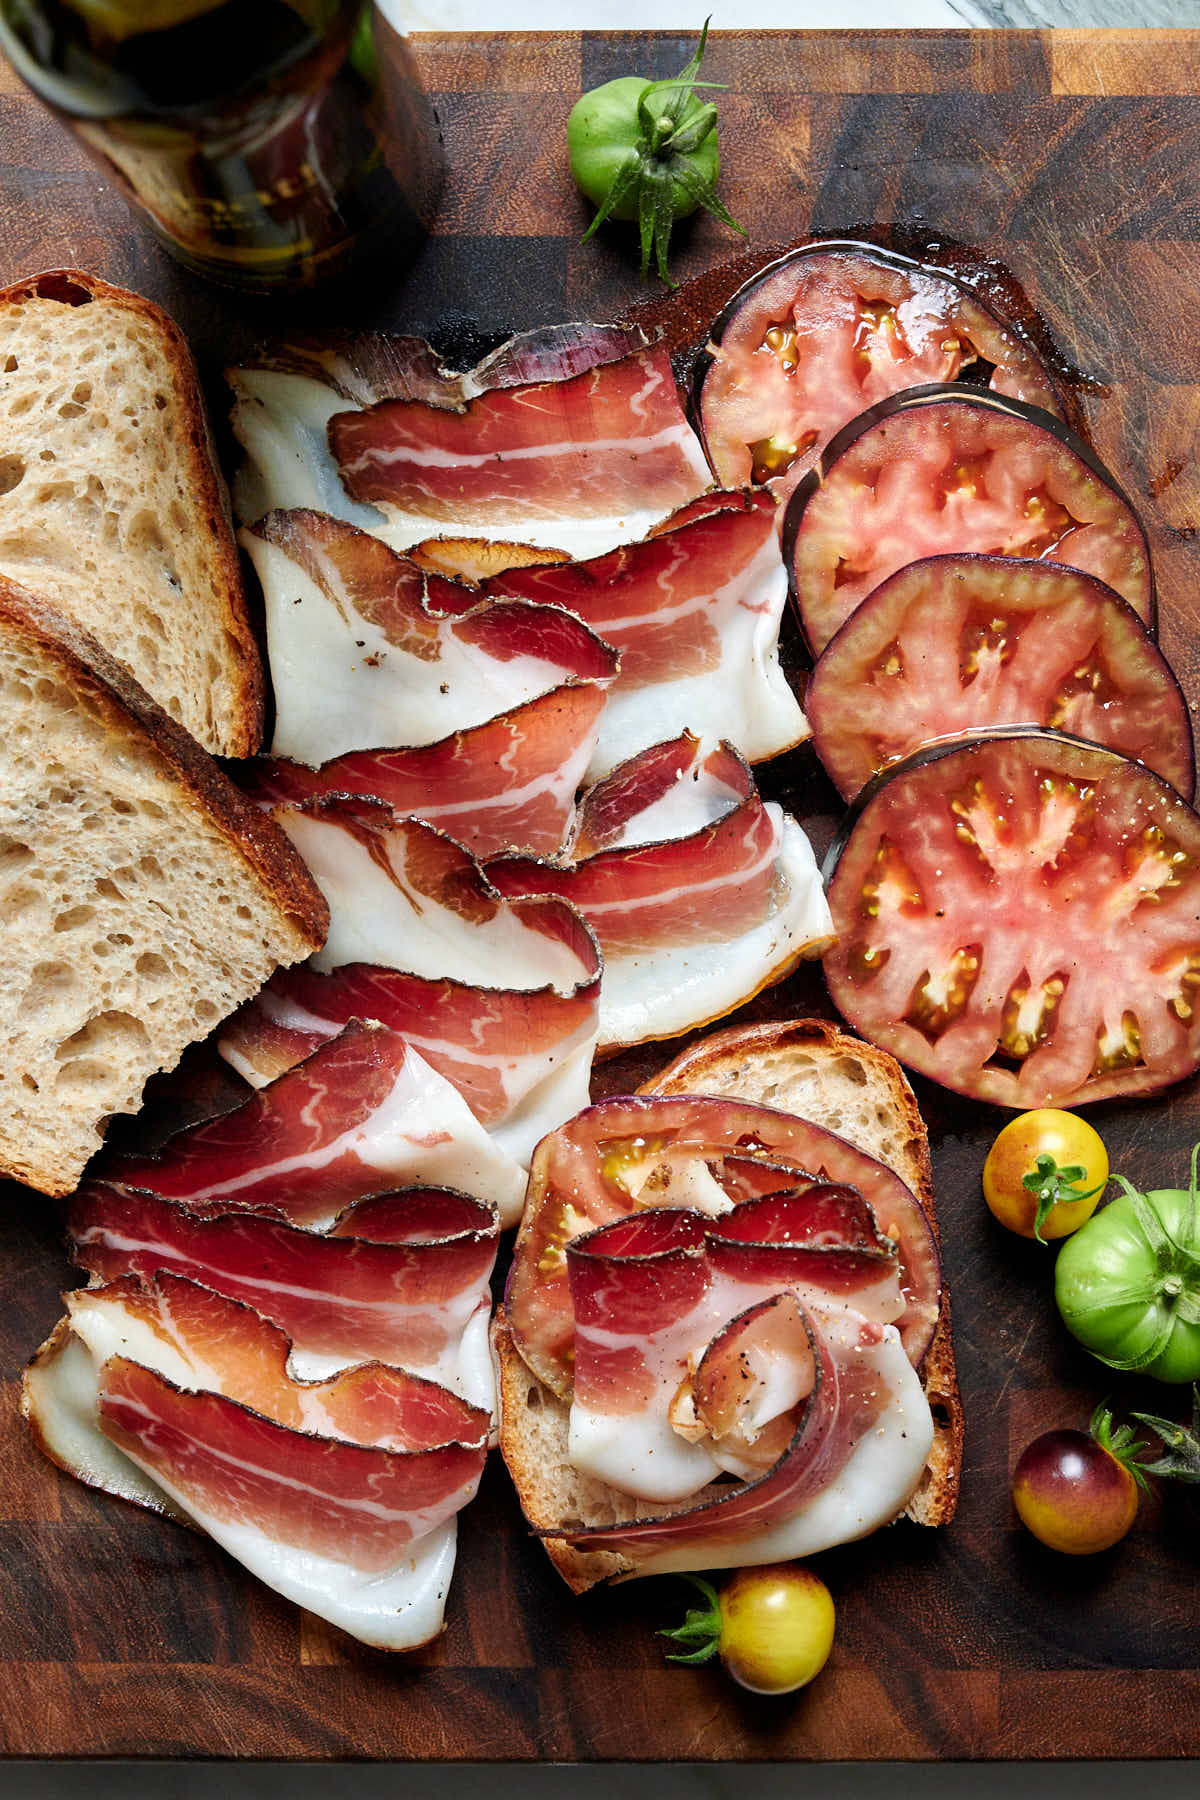 Sliced speck served with bread and tomato slices.